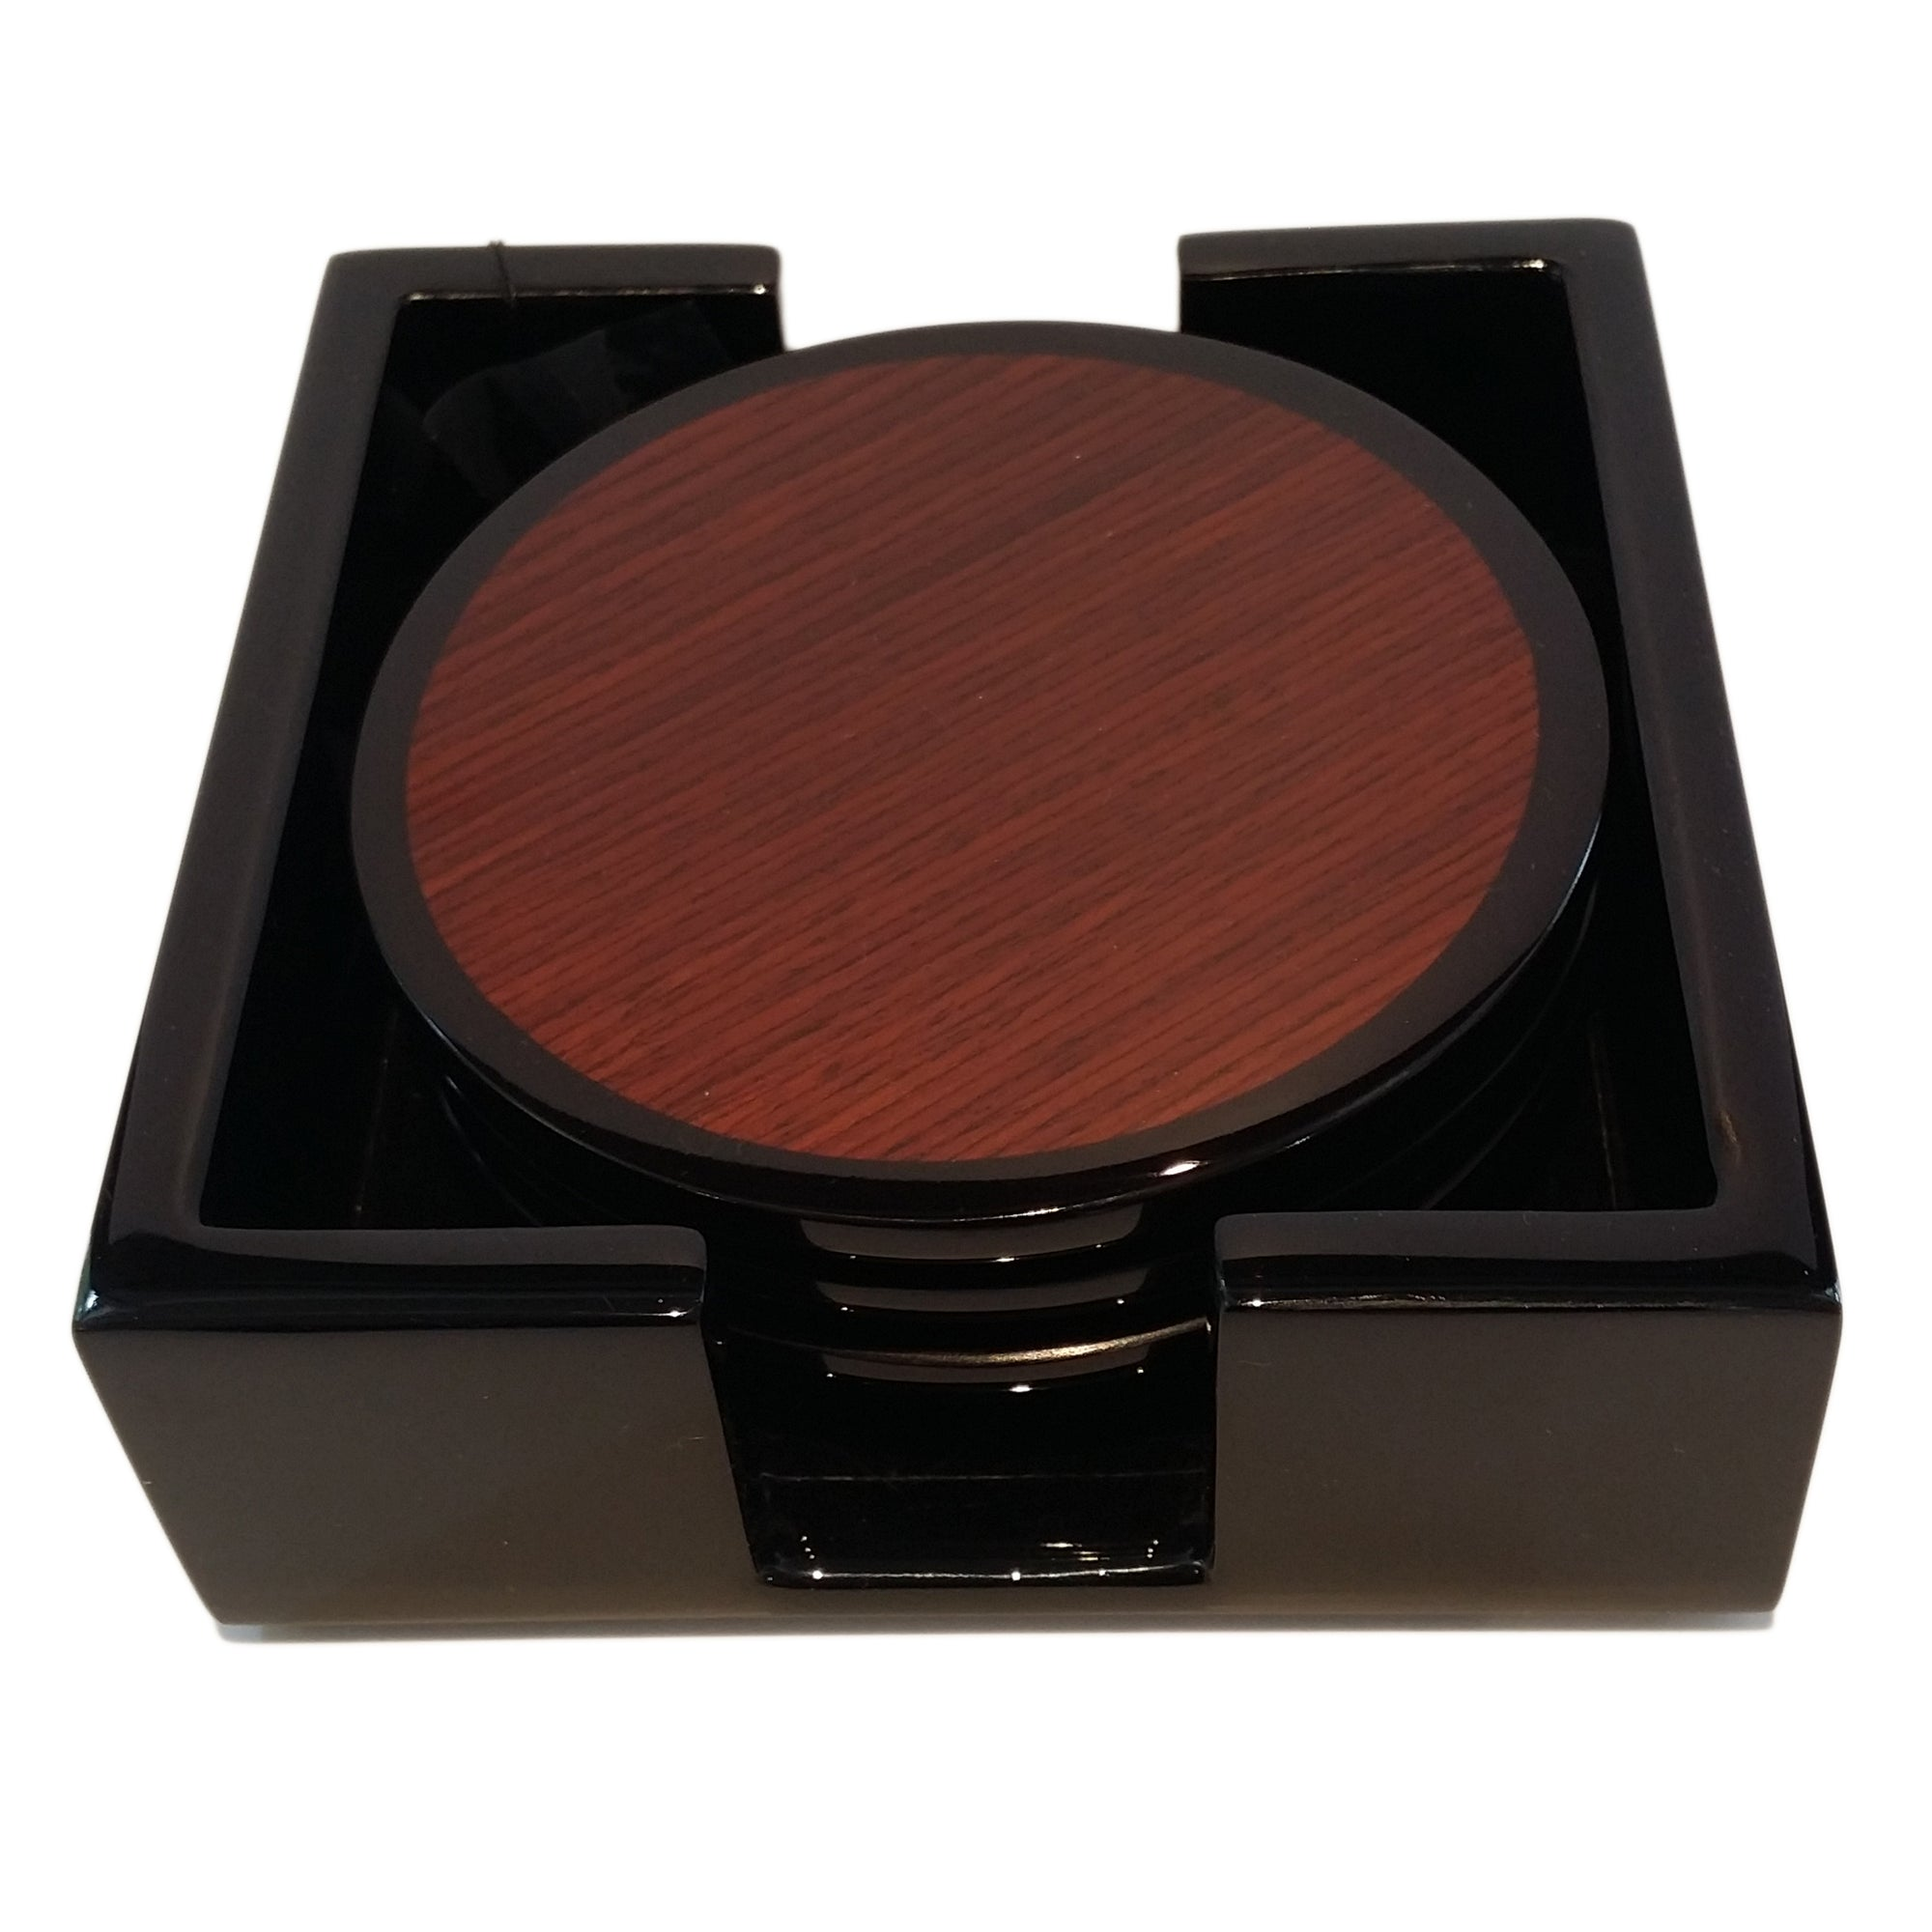 Rosewood High Gloss Lacquer Set of Coasters